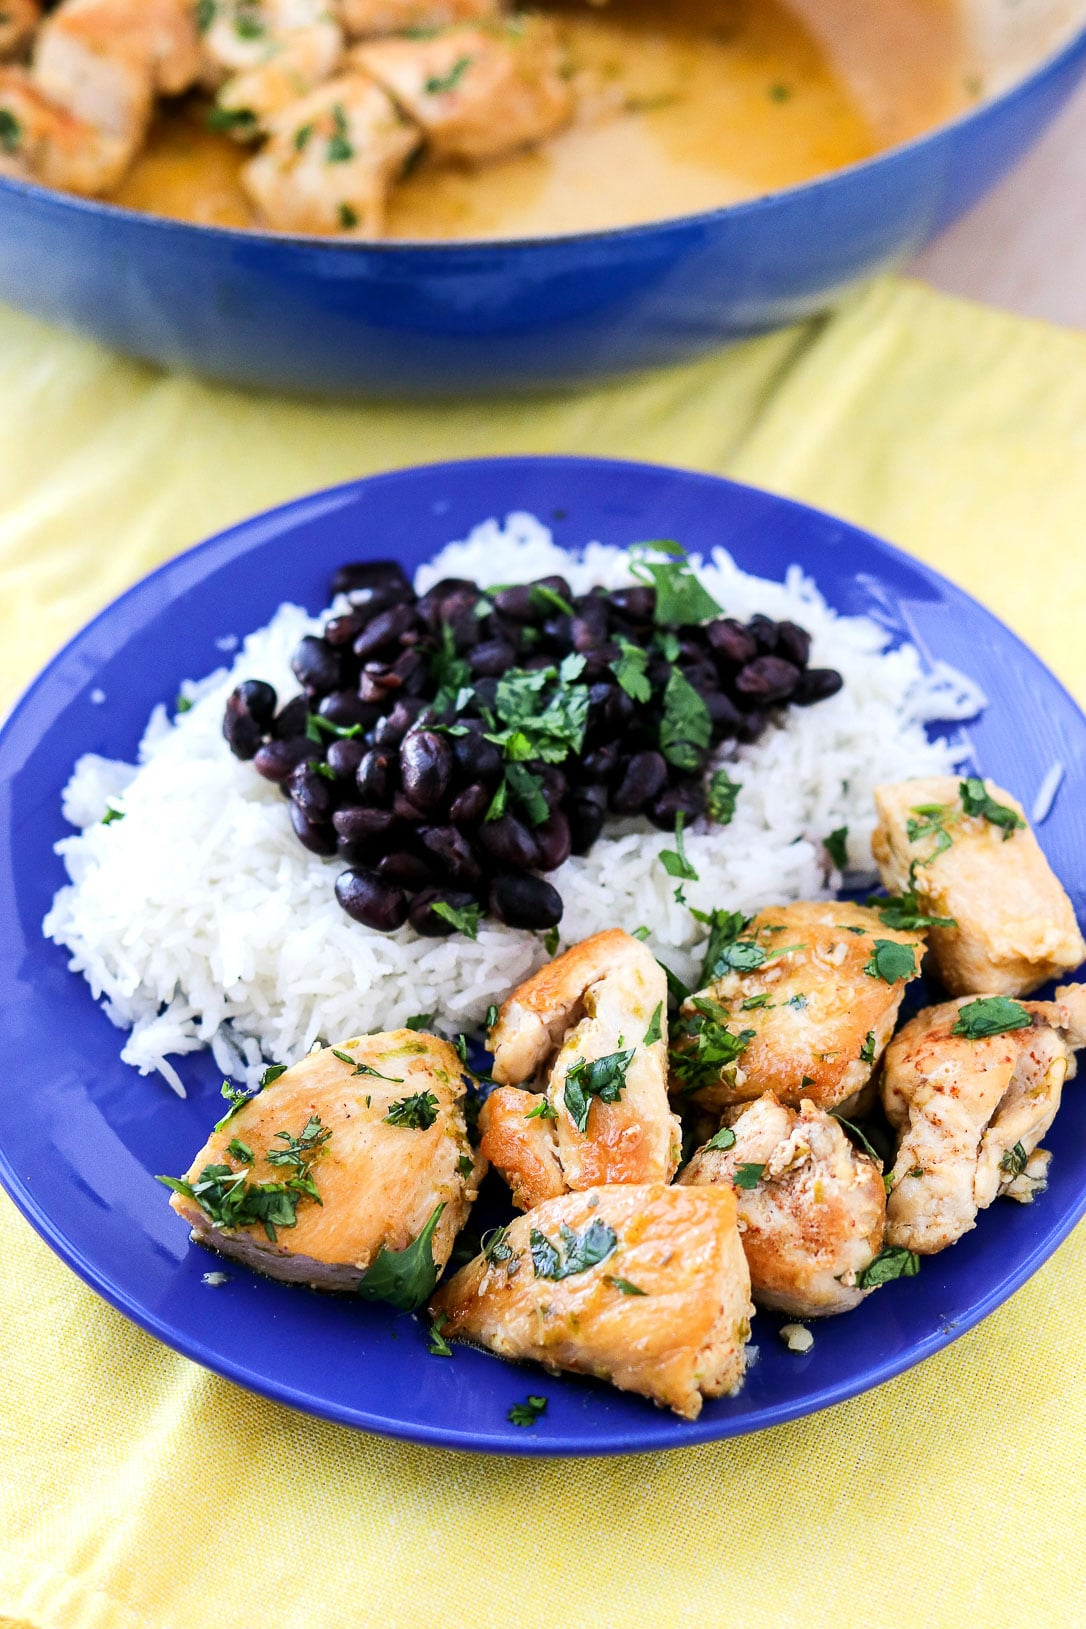 Cilantro Lime Chicken Bites next to rice and black beans